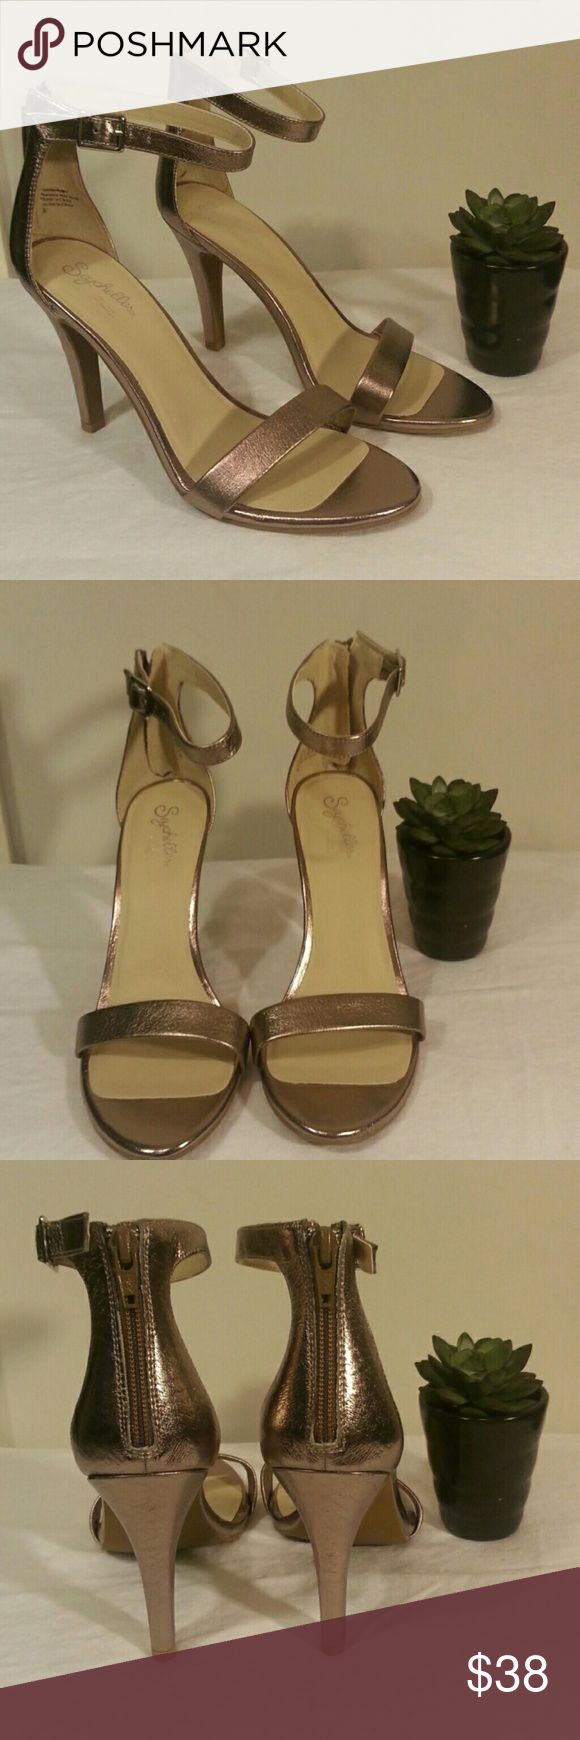 """NWOT Seychelles metallic heels!! These fabulous shoes are new without tags. Perfect condition!! Size 8. 4"""" heel. Zipper heel. Adjustable ankle strap.  Metallic color is a mix betweeb bronze, copper, and silver. Pairs well with a LBD! Seychelles Shoes Heels #silveranklestrapsheels"""